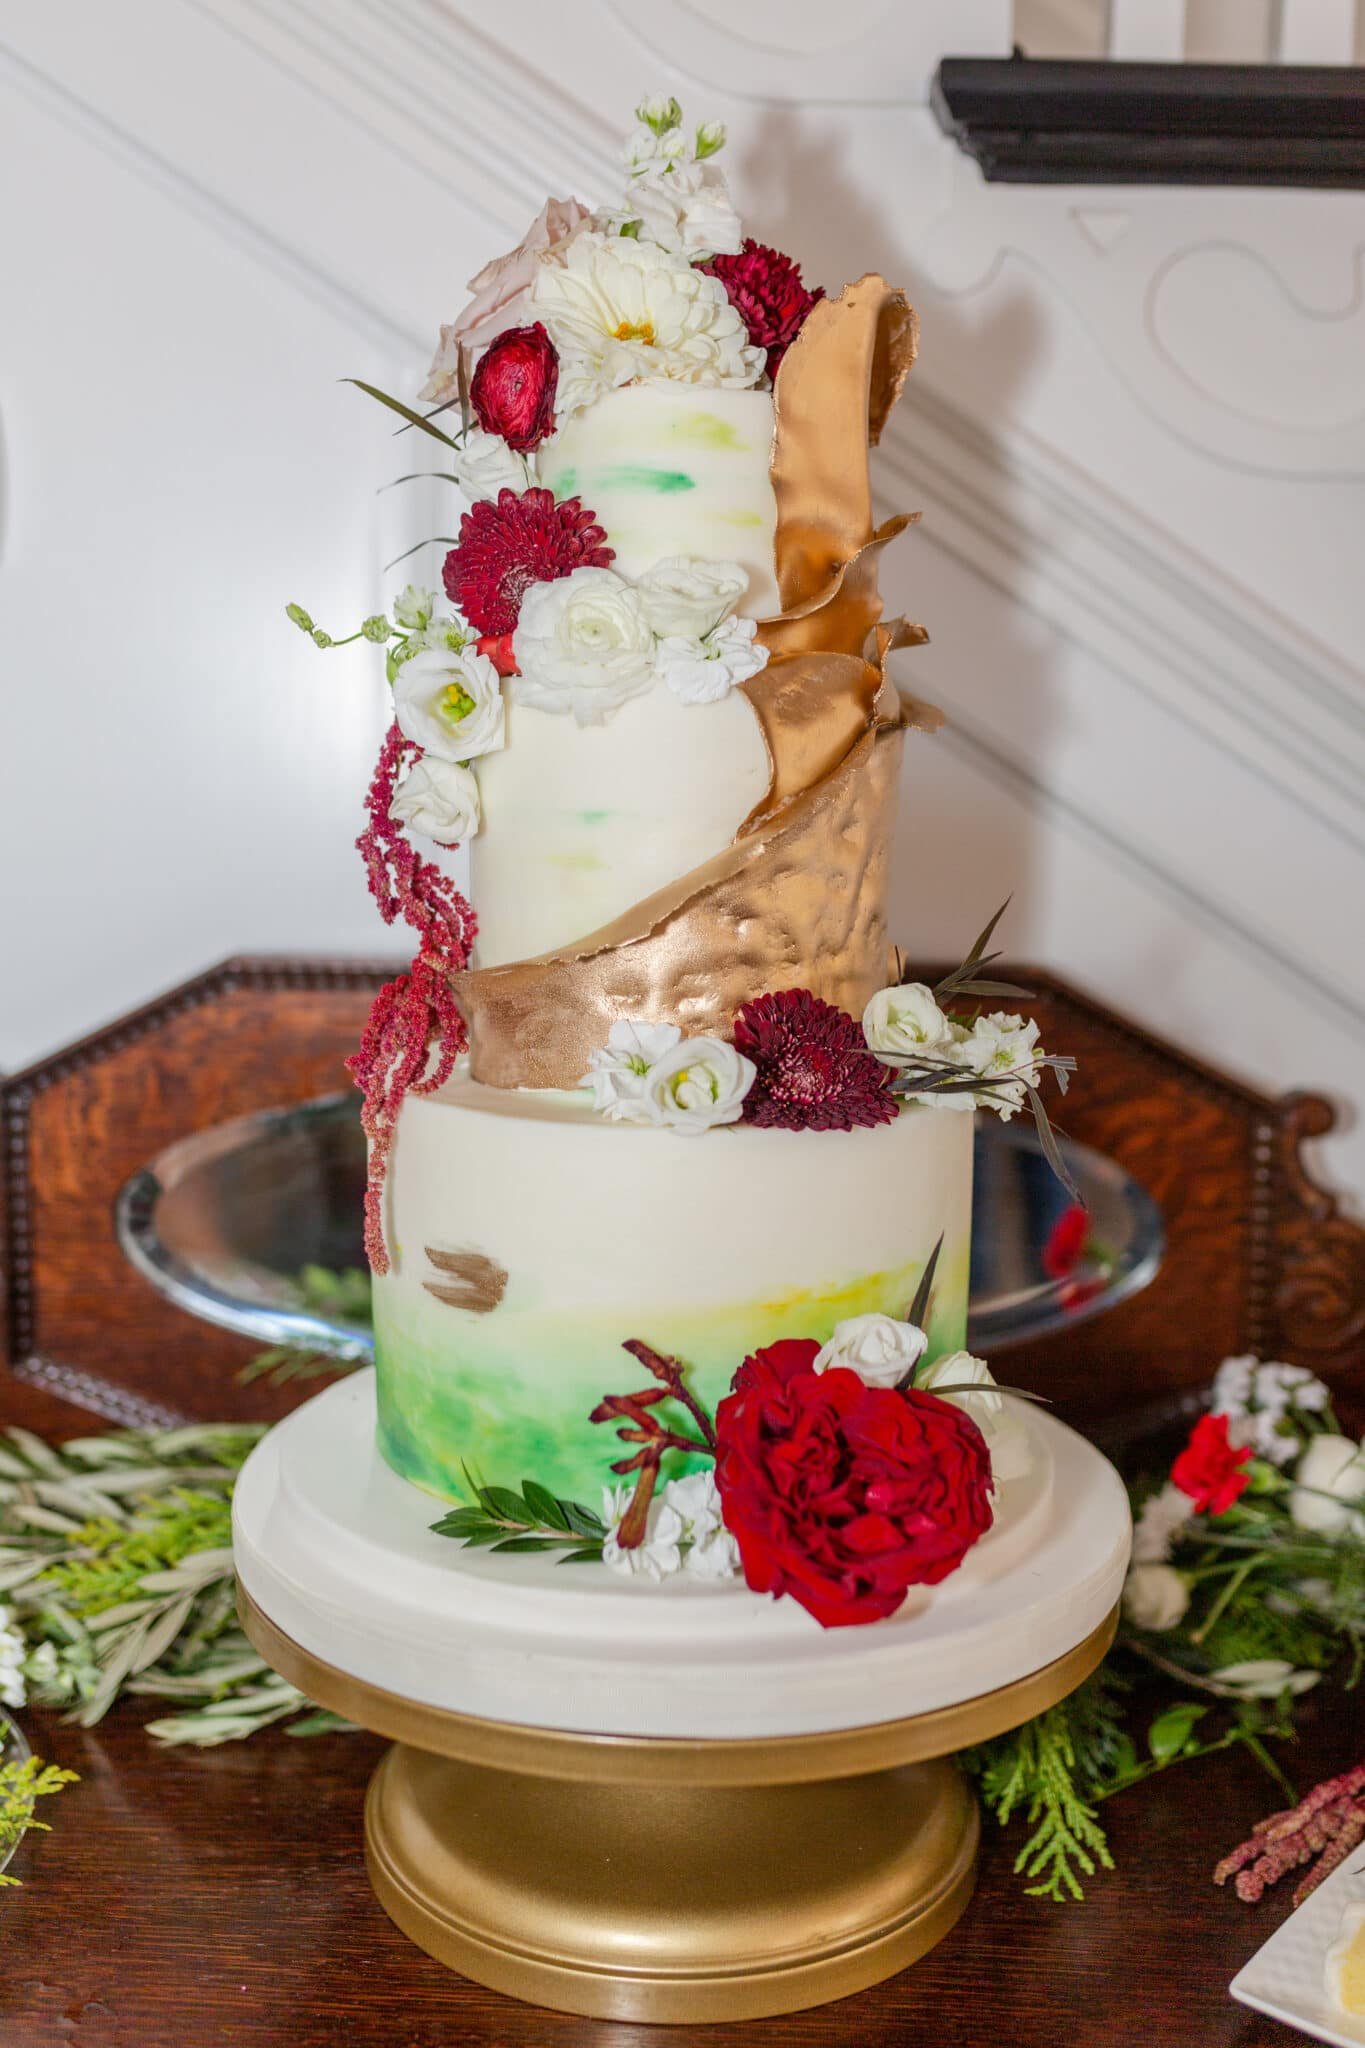 the white cake decorated with red flowers and spots of green and gold